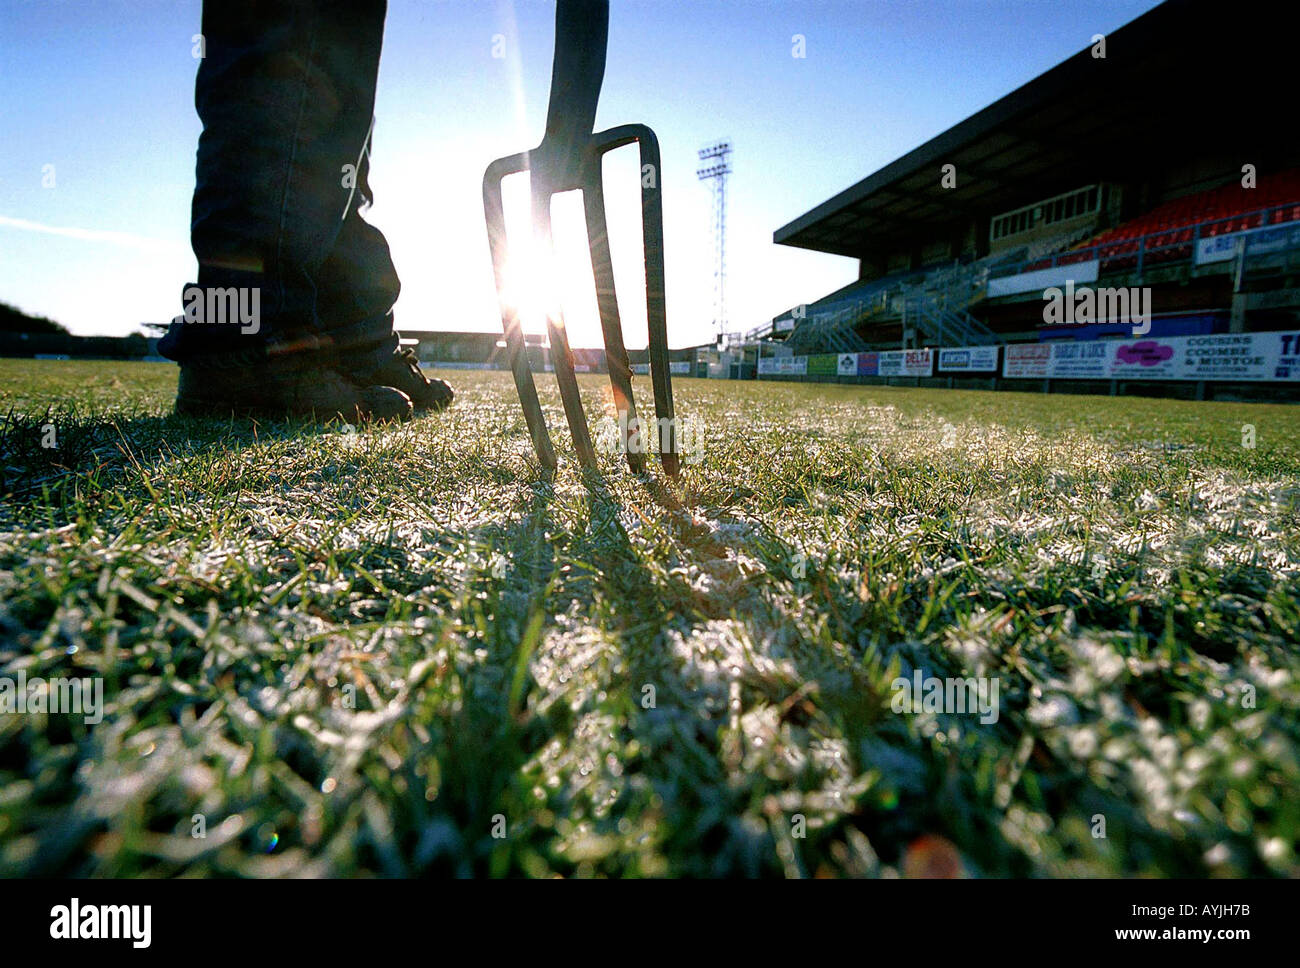 Frozen football pitch - Stock Image